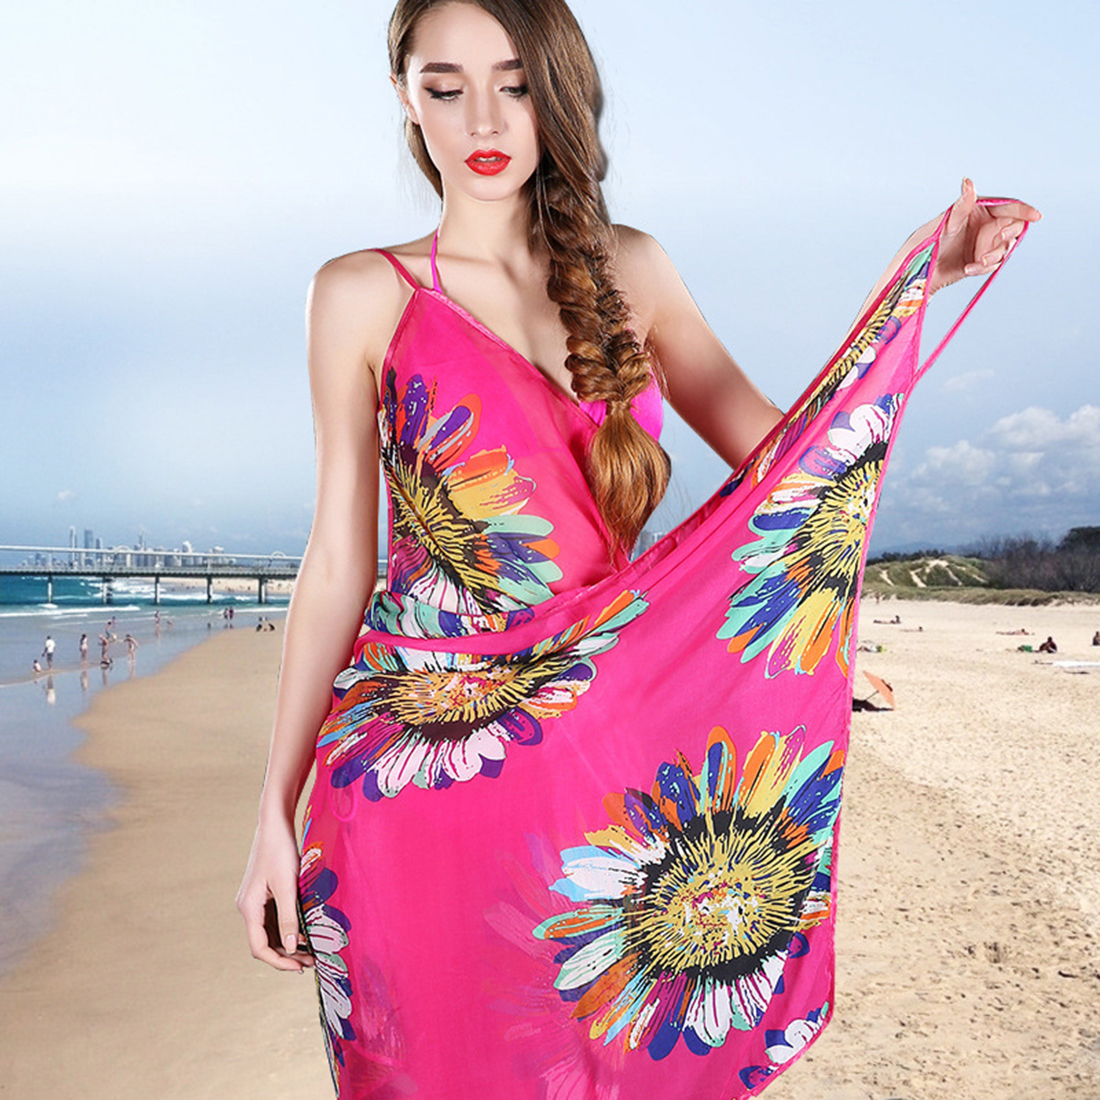 2017 hot sale women beach dress open back swimwear sexy bikini cover ups wrap pareo skirts towel. Black Bedroom Furniture Sets. Home Design Ideas